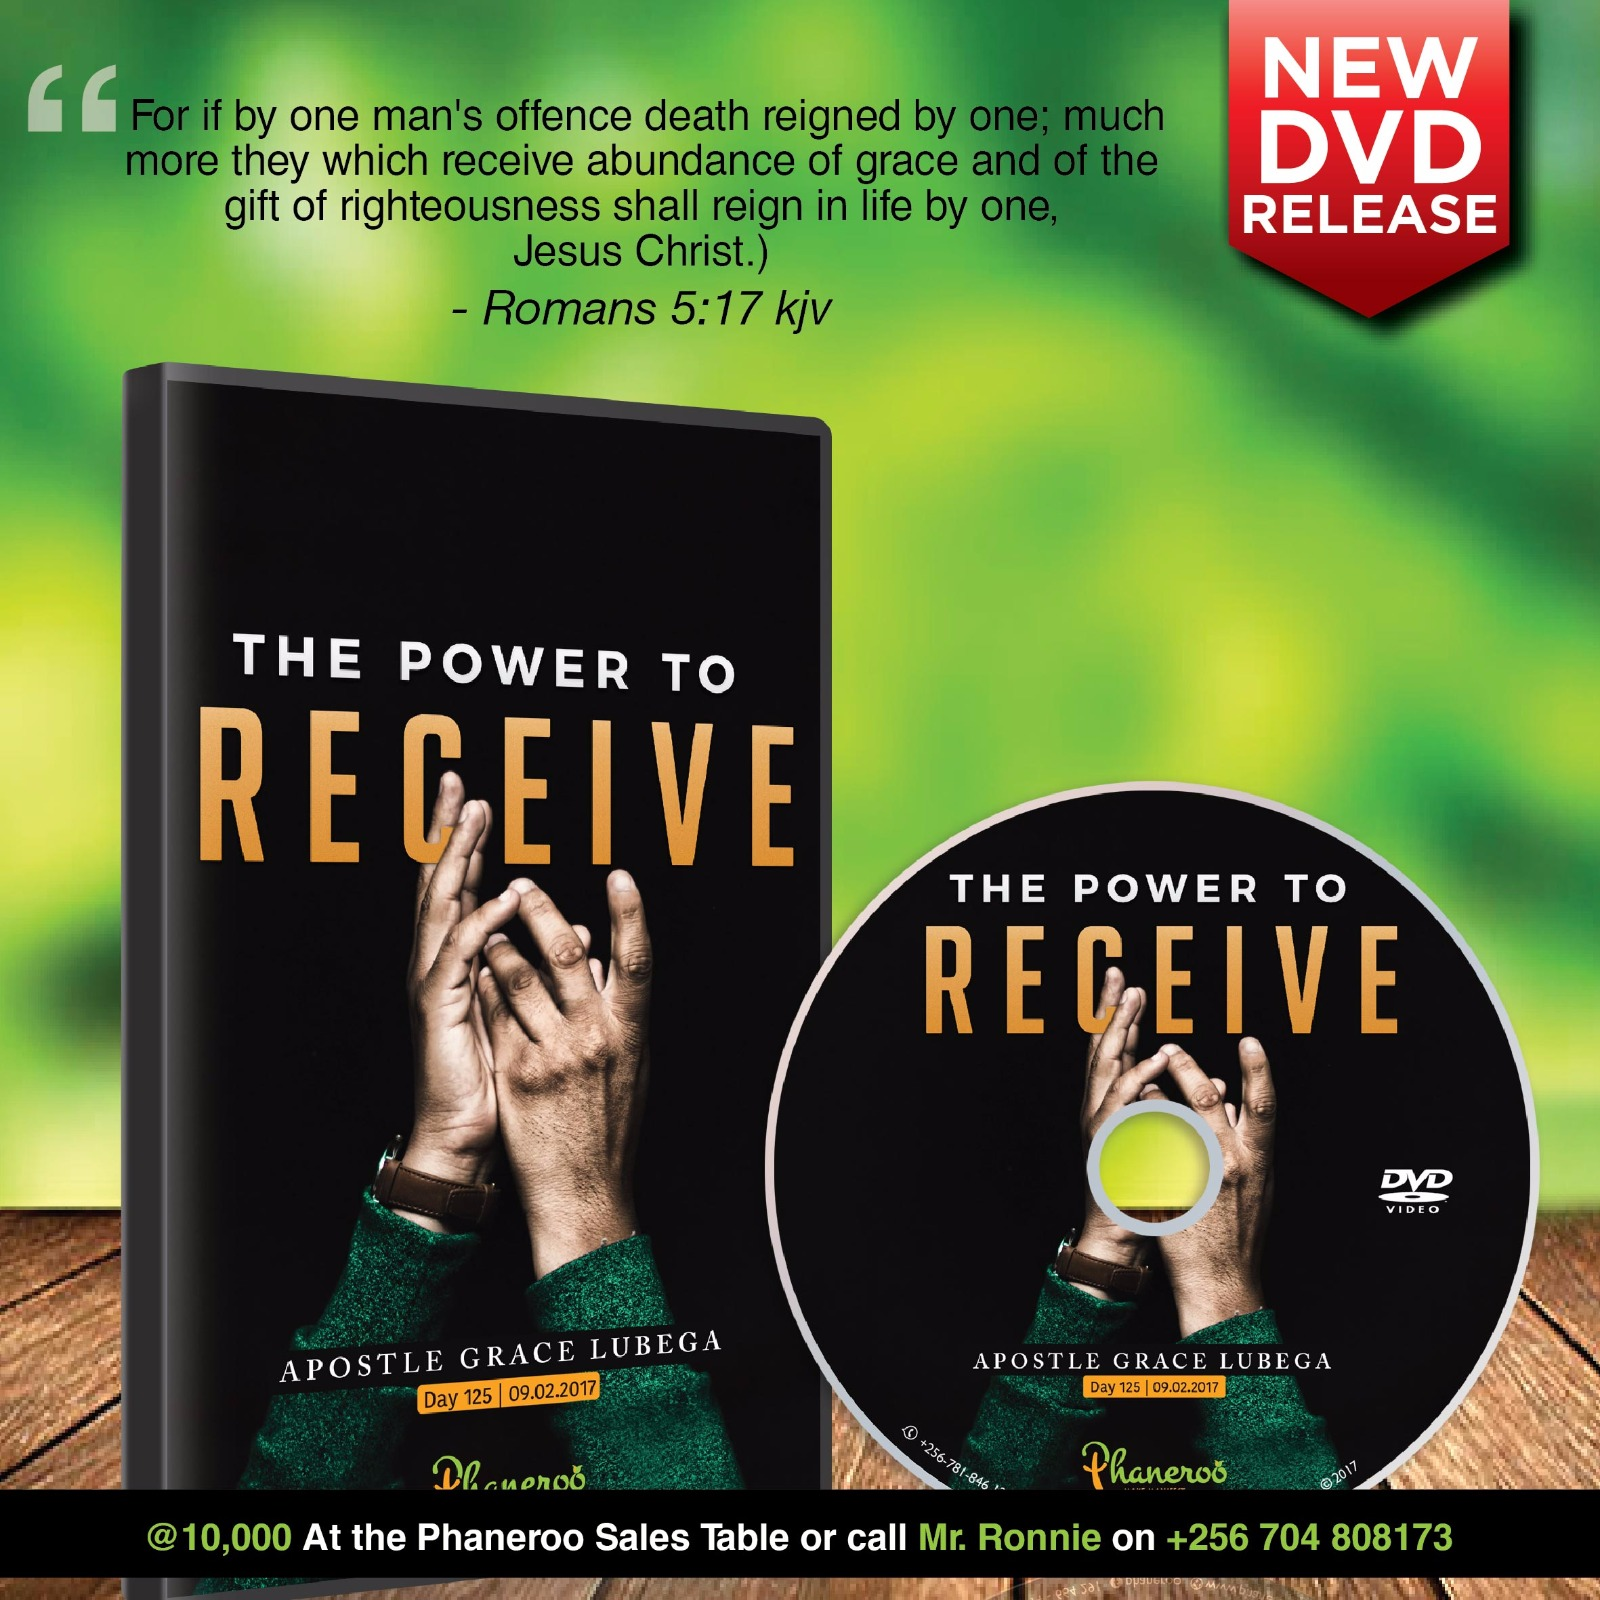 The Power to Receive